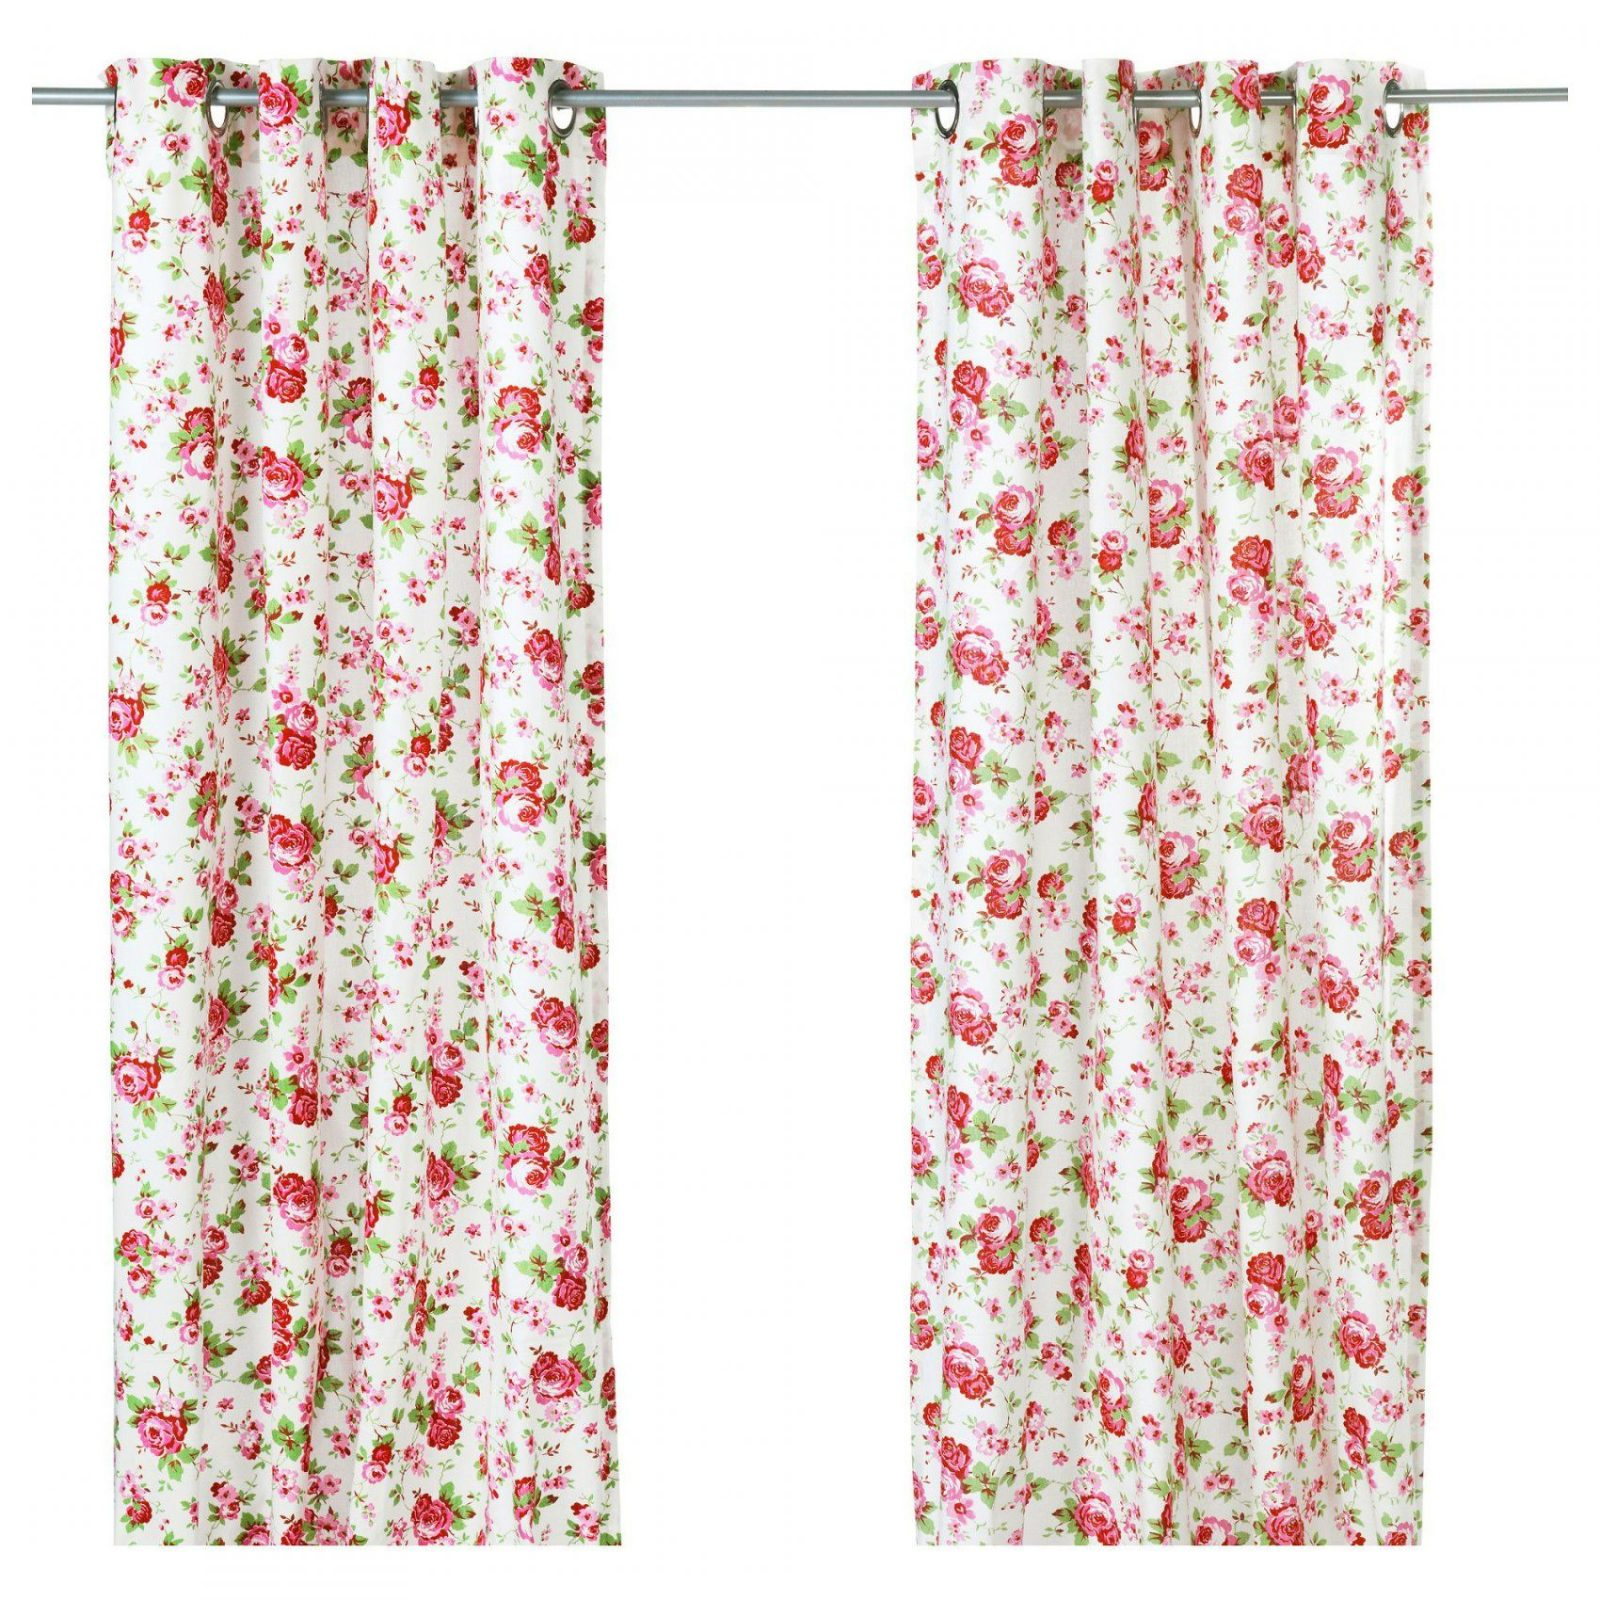 Rosali Curtains 1 Pair  Ikea  Kitchen  Pinterest von Ikea Bettwäsche Rosali Photo